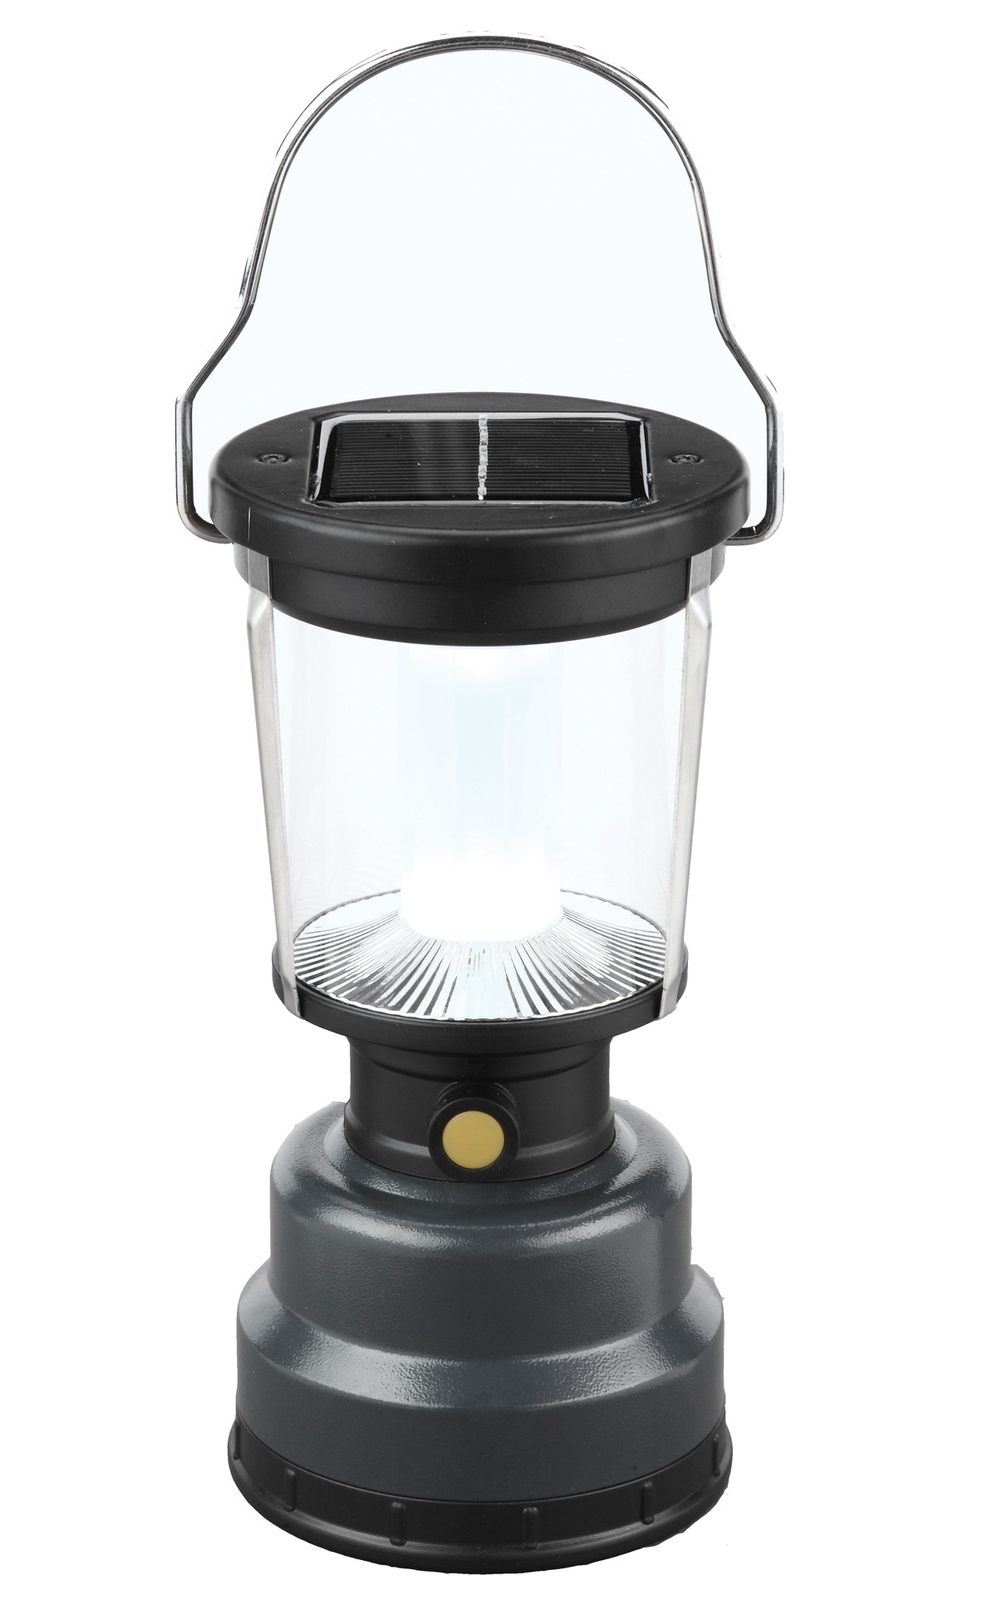 Widely Used Oztrail Escape Led Rechargeable Lantern Pertaining To Outdoor Rechargeable Lanterns (View 15 of 20)